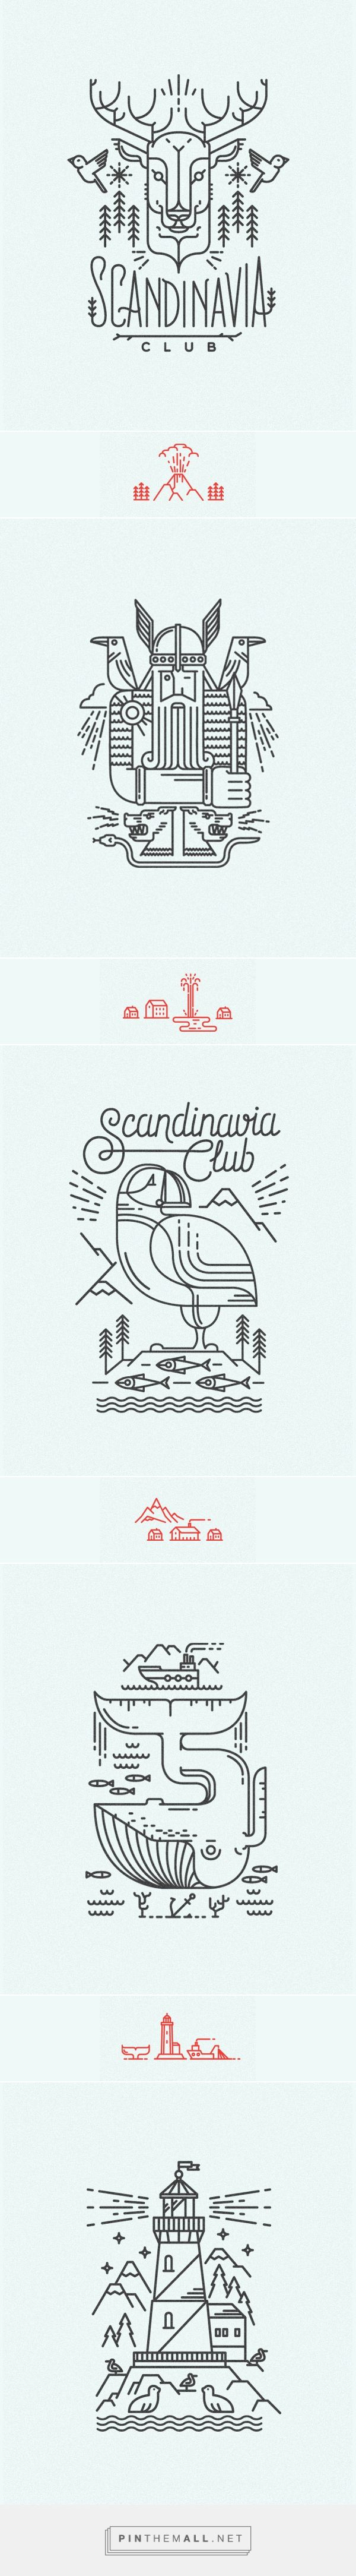 Scandinavian line illustrations for Scandinavia Club in Moscow | #illustration #design